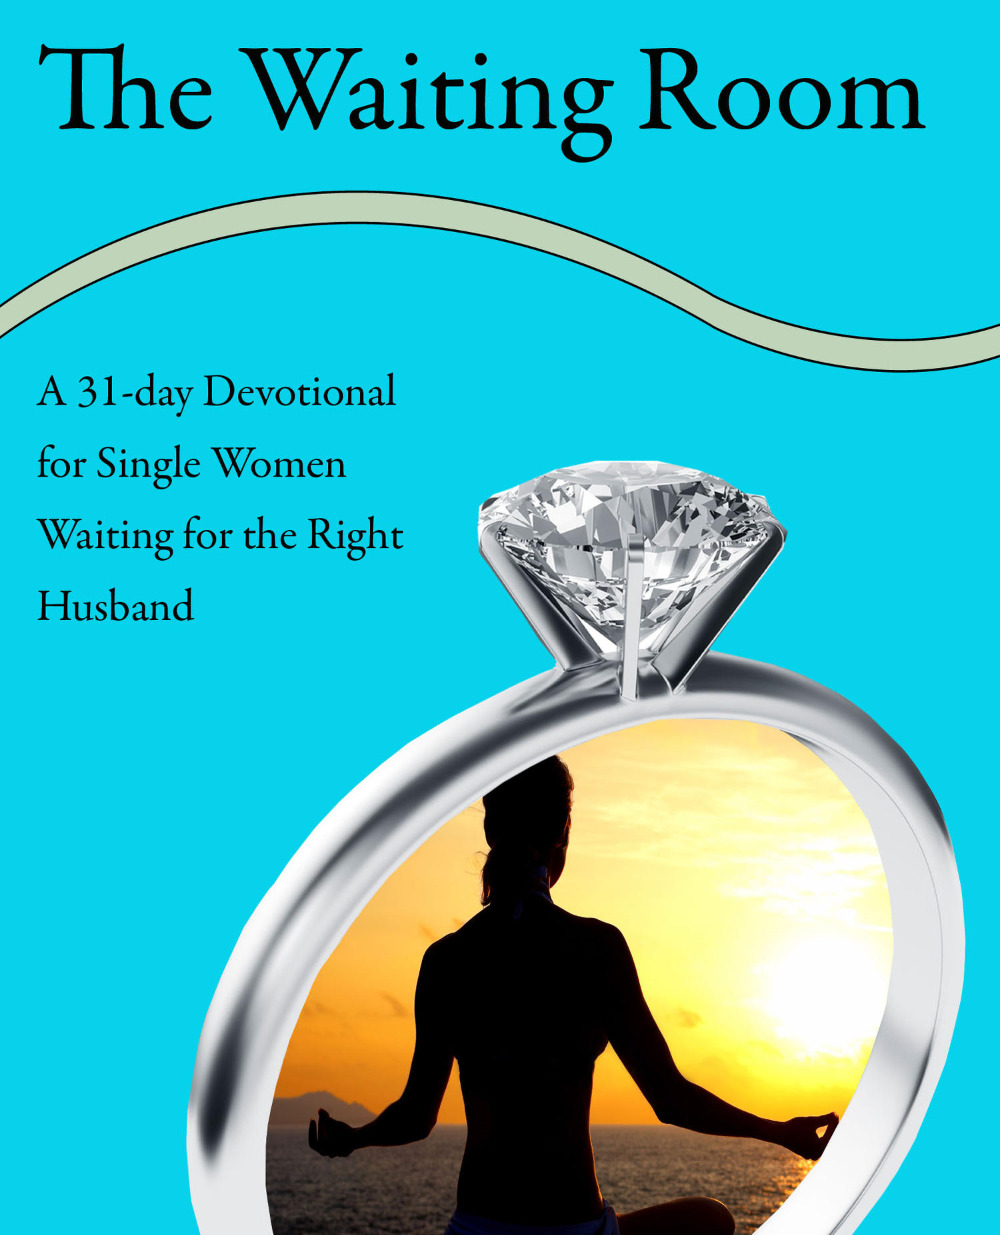 The Waiting Room by T.C. Spellen